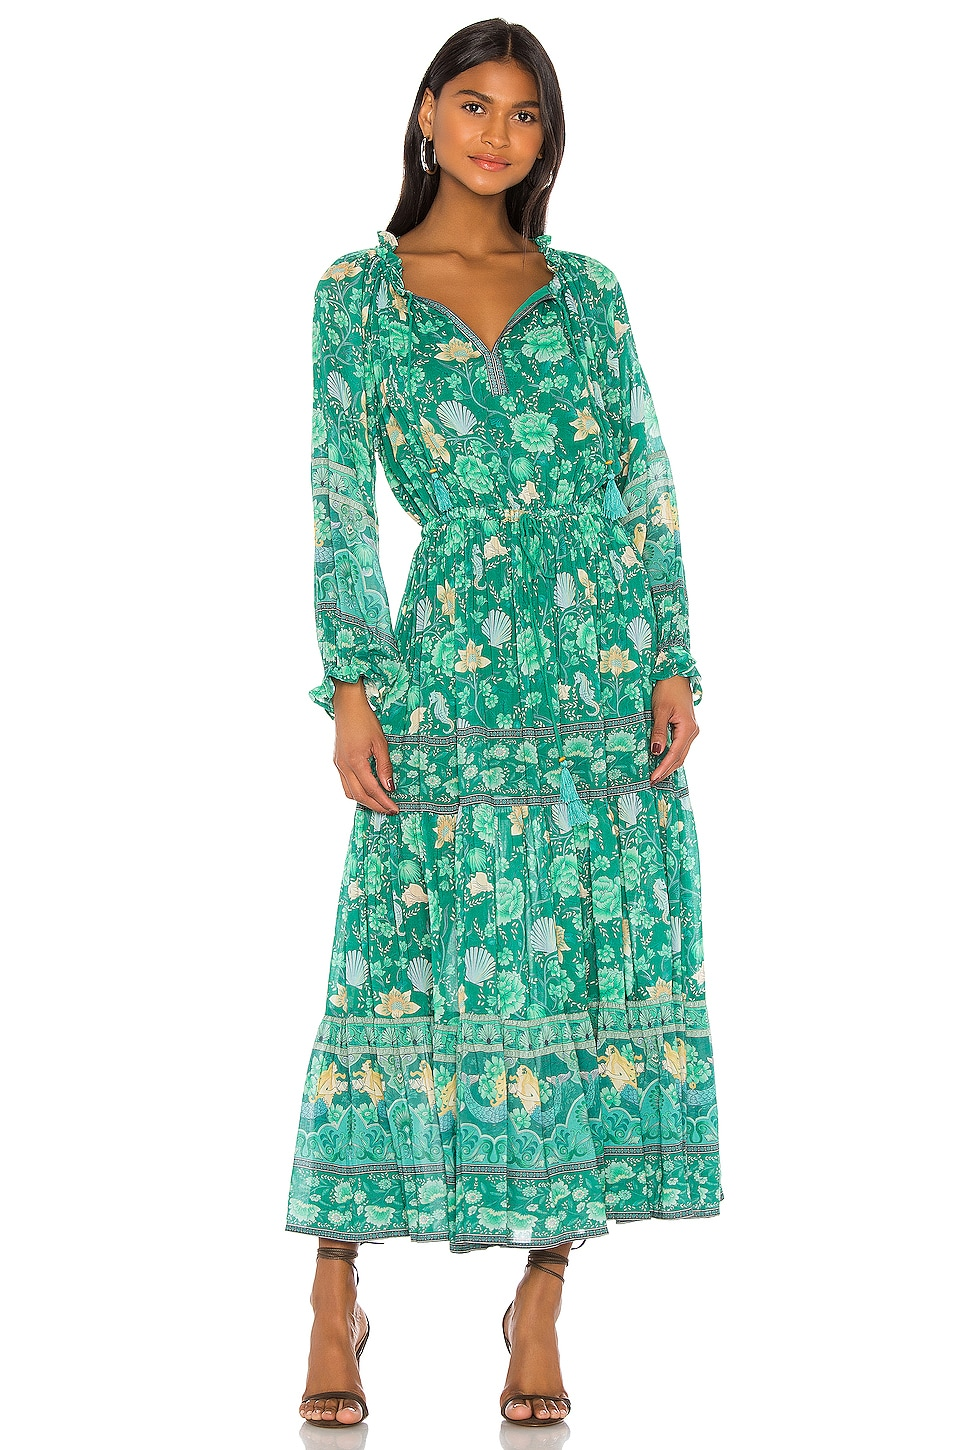 Spell & The Gypsy Collective x REVOLVE Seashell Gown in Kelley Green